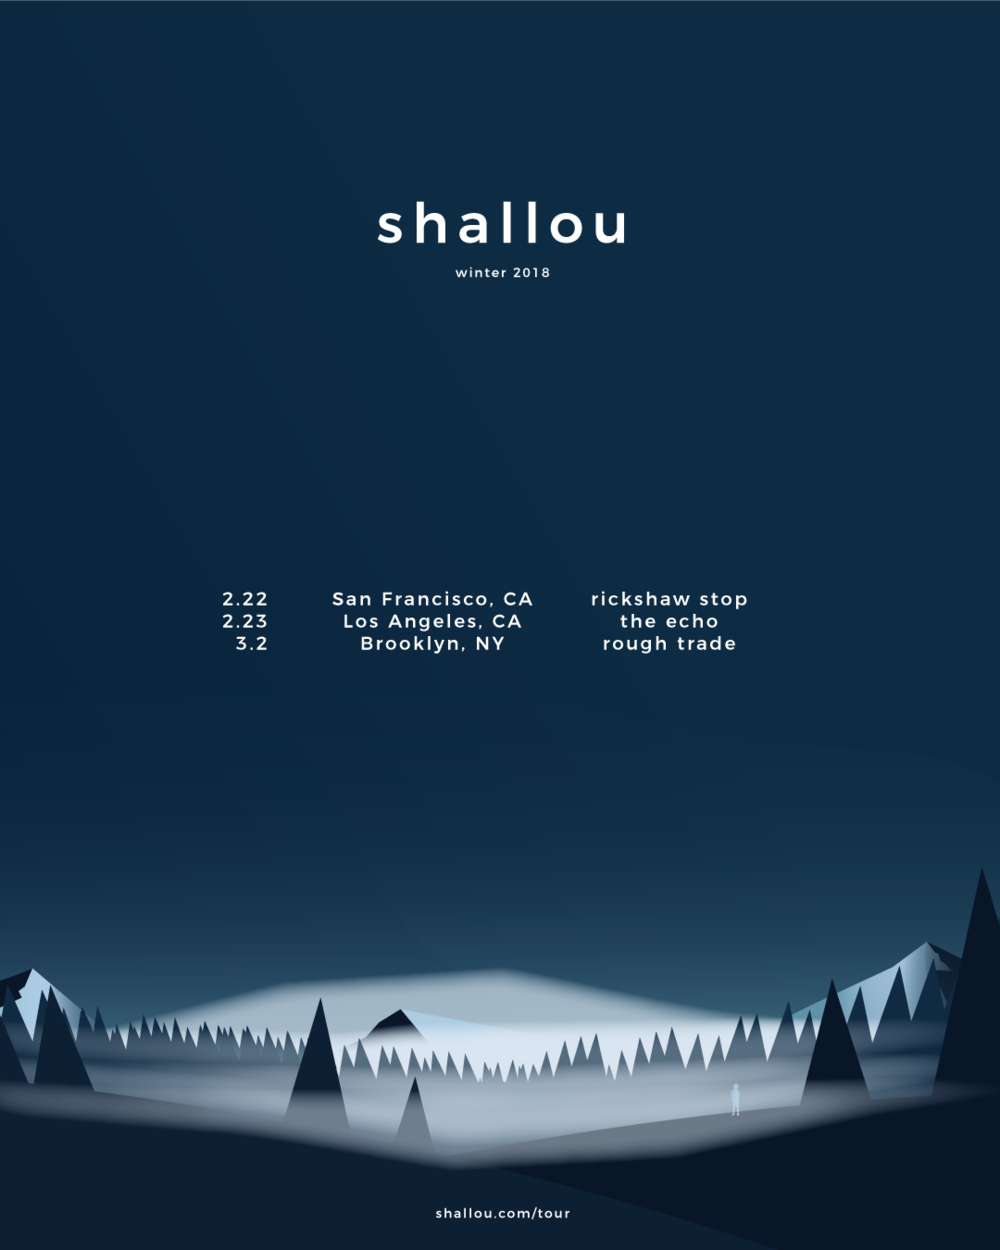 shallou---late-winter-2018-title.png